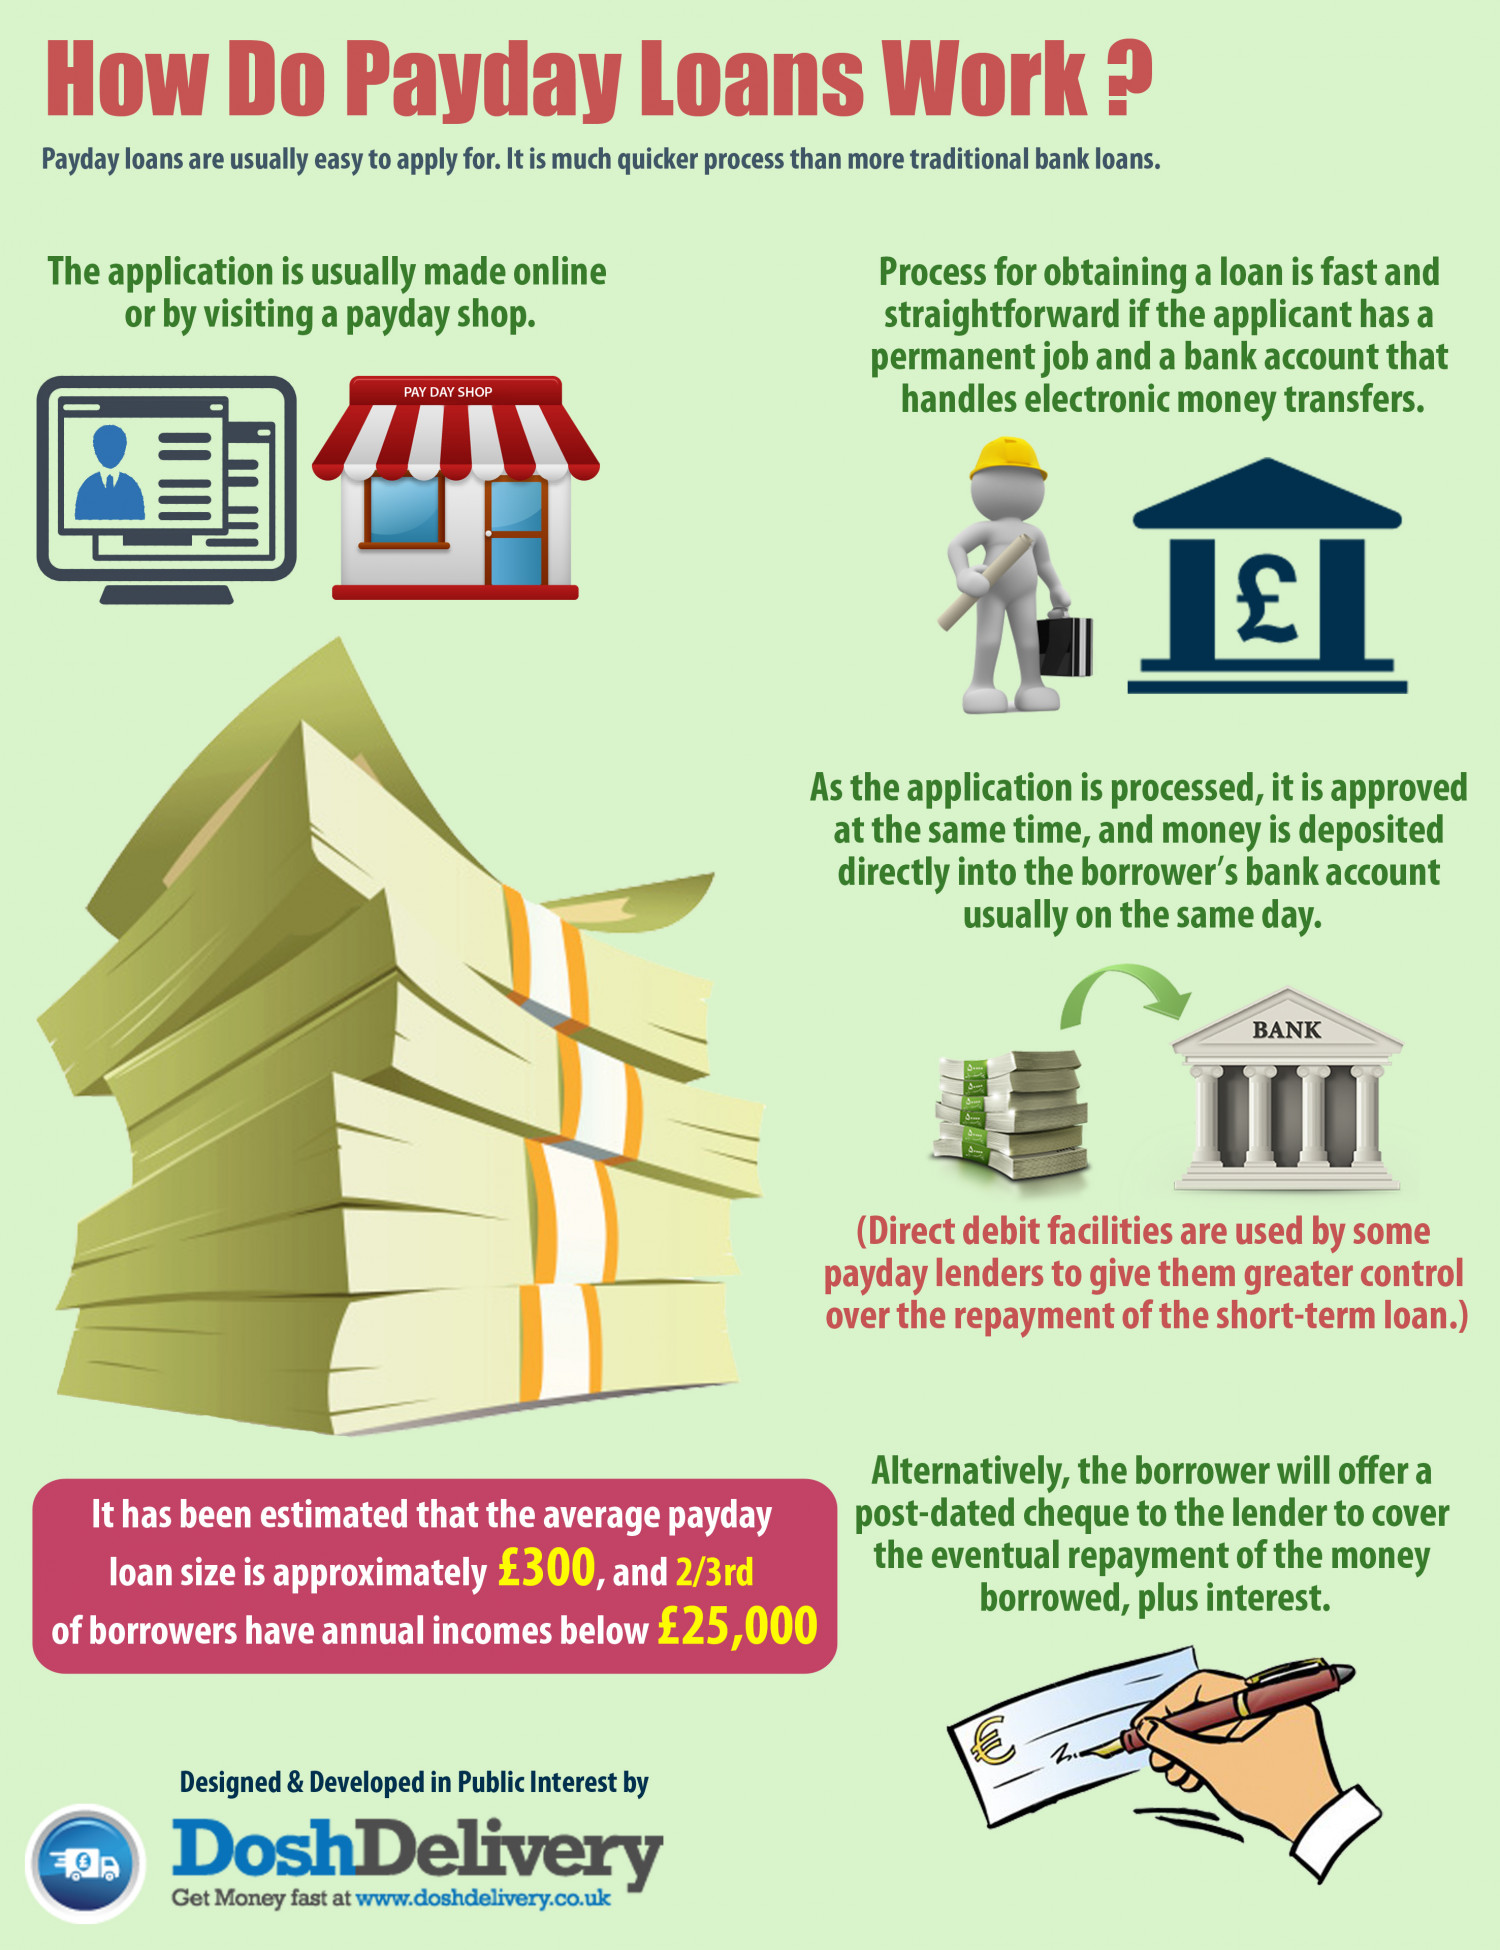 How Do Payday Loans Work Infographic